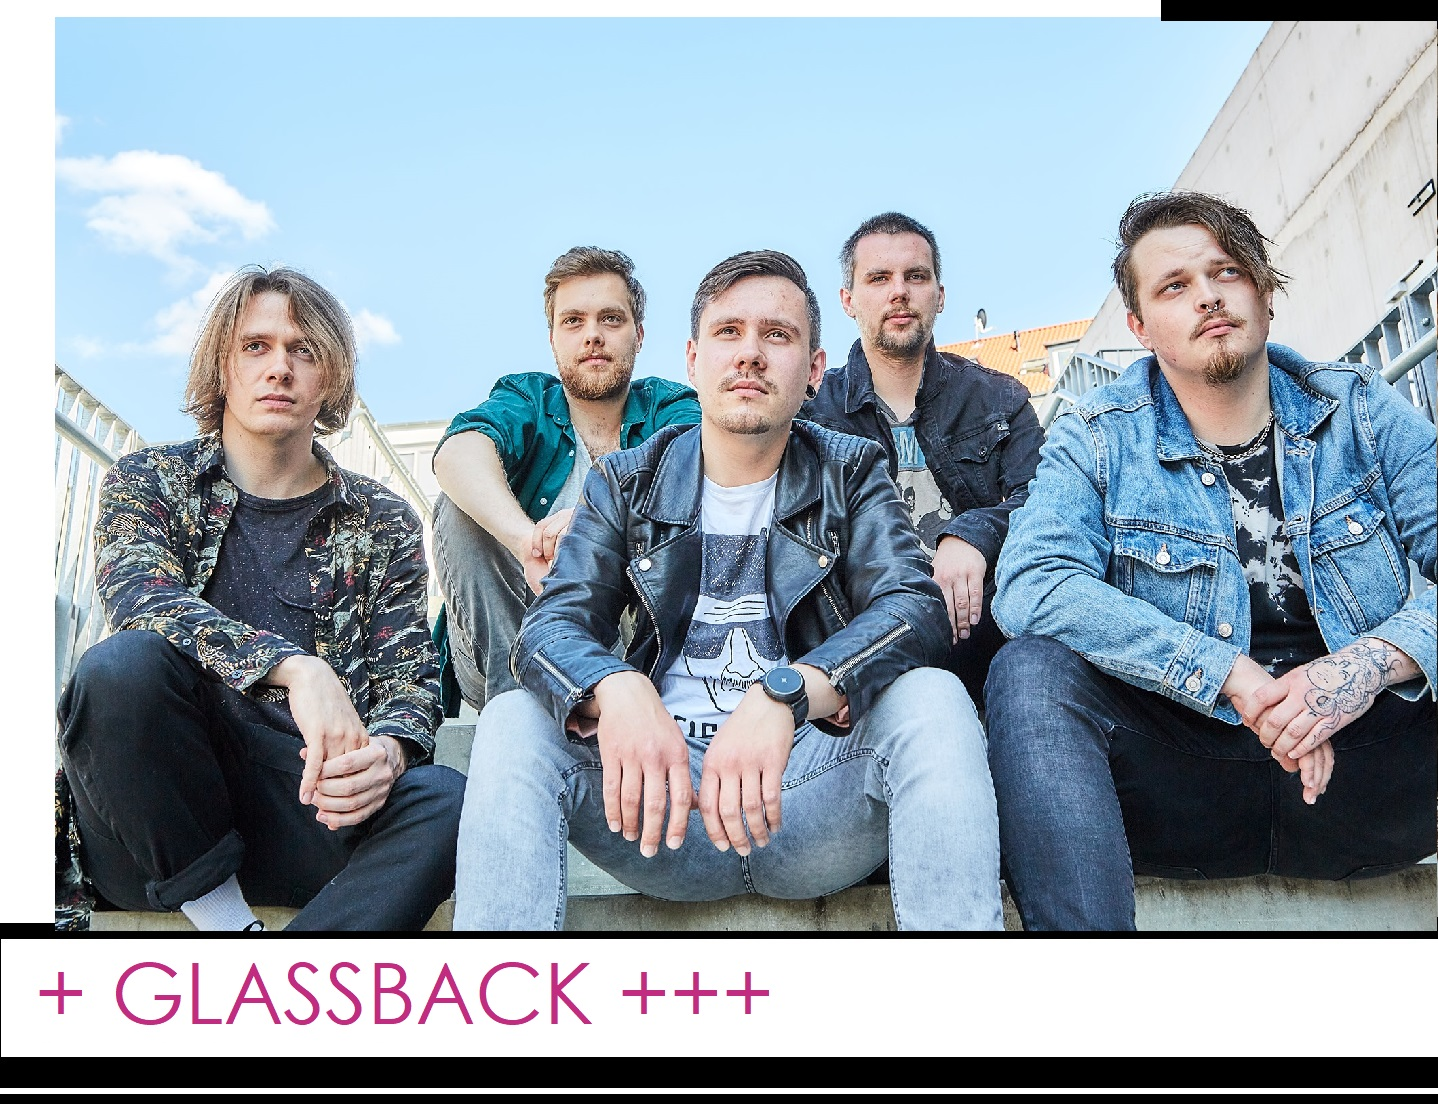 Glassback - Over again [Review]